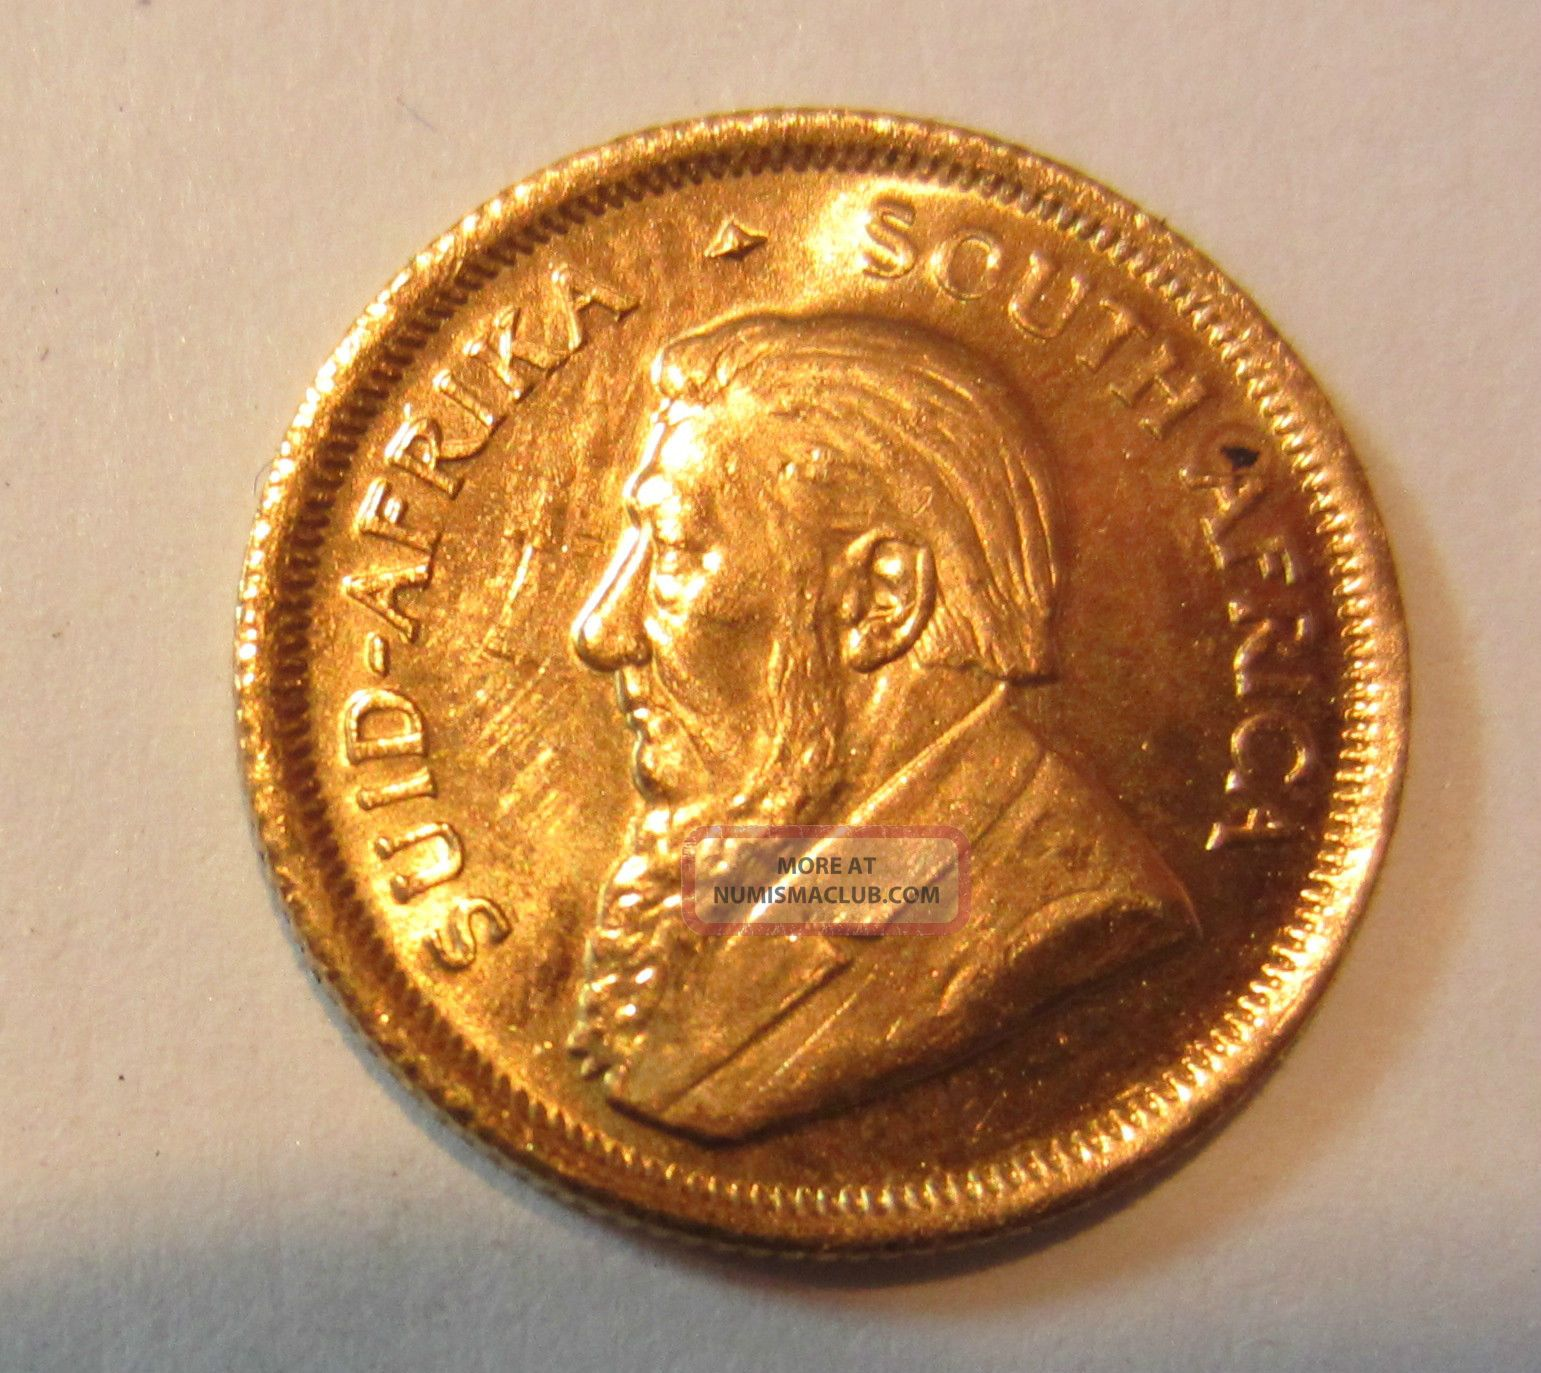 1983 South African Krugerrand 1 10 Oz Gold Coin